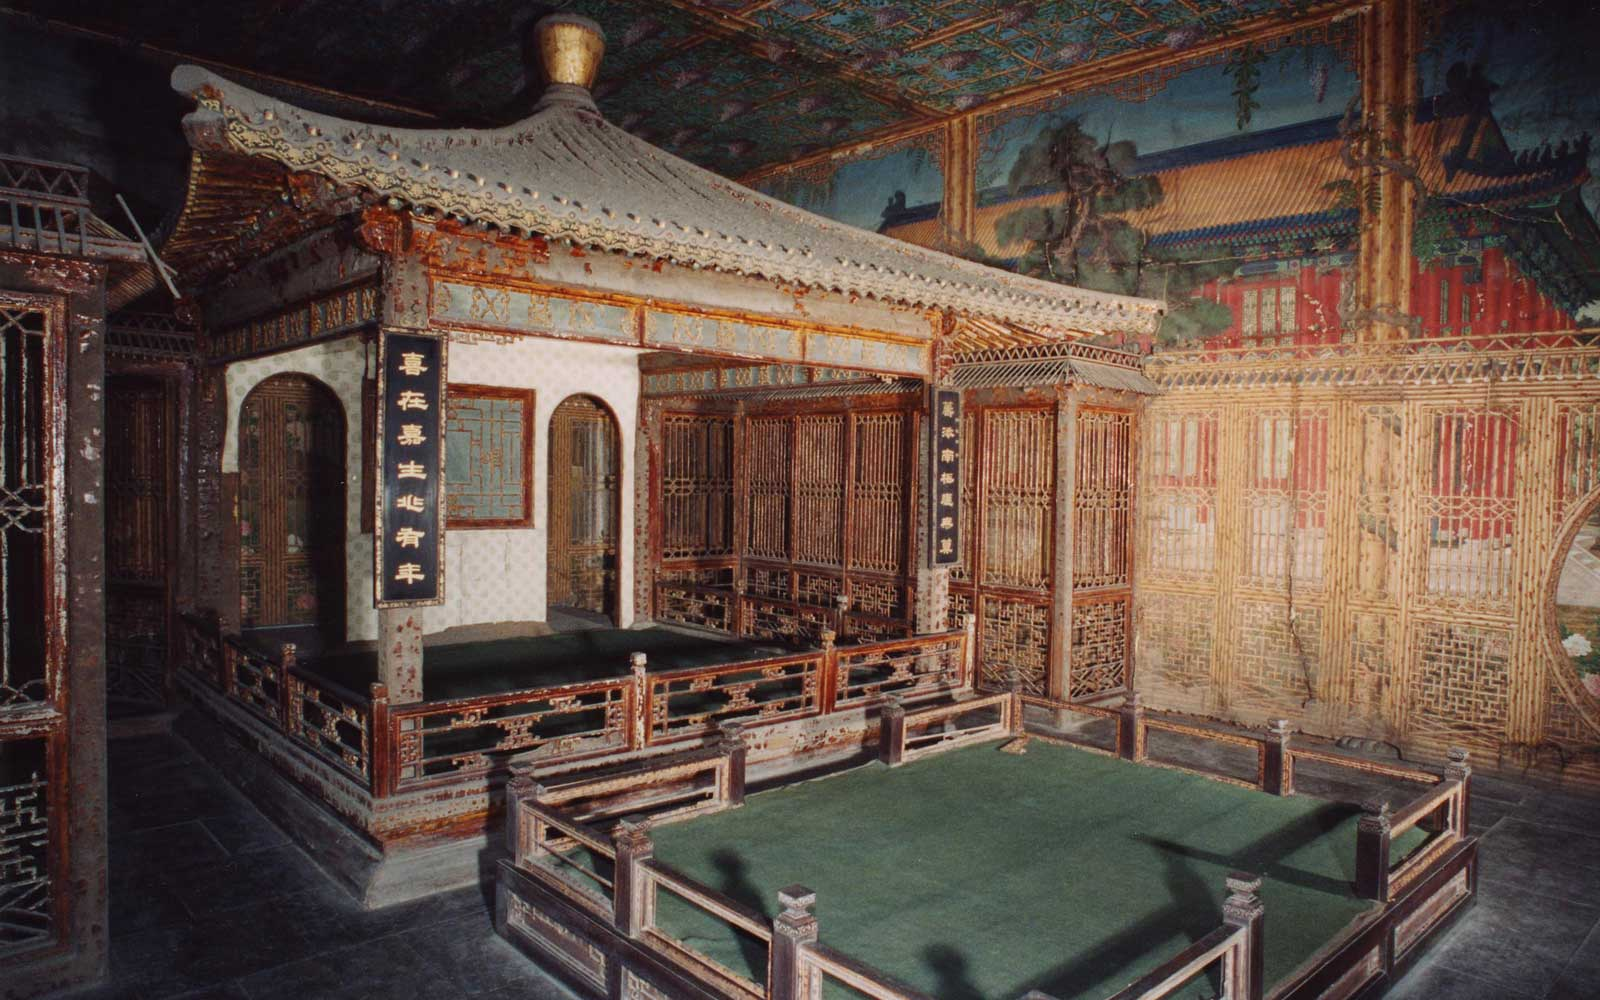 A photo of one of the interiors, the Juanqinzhai theater room, before conservation.